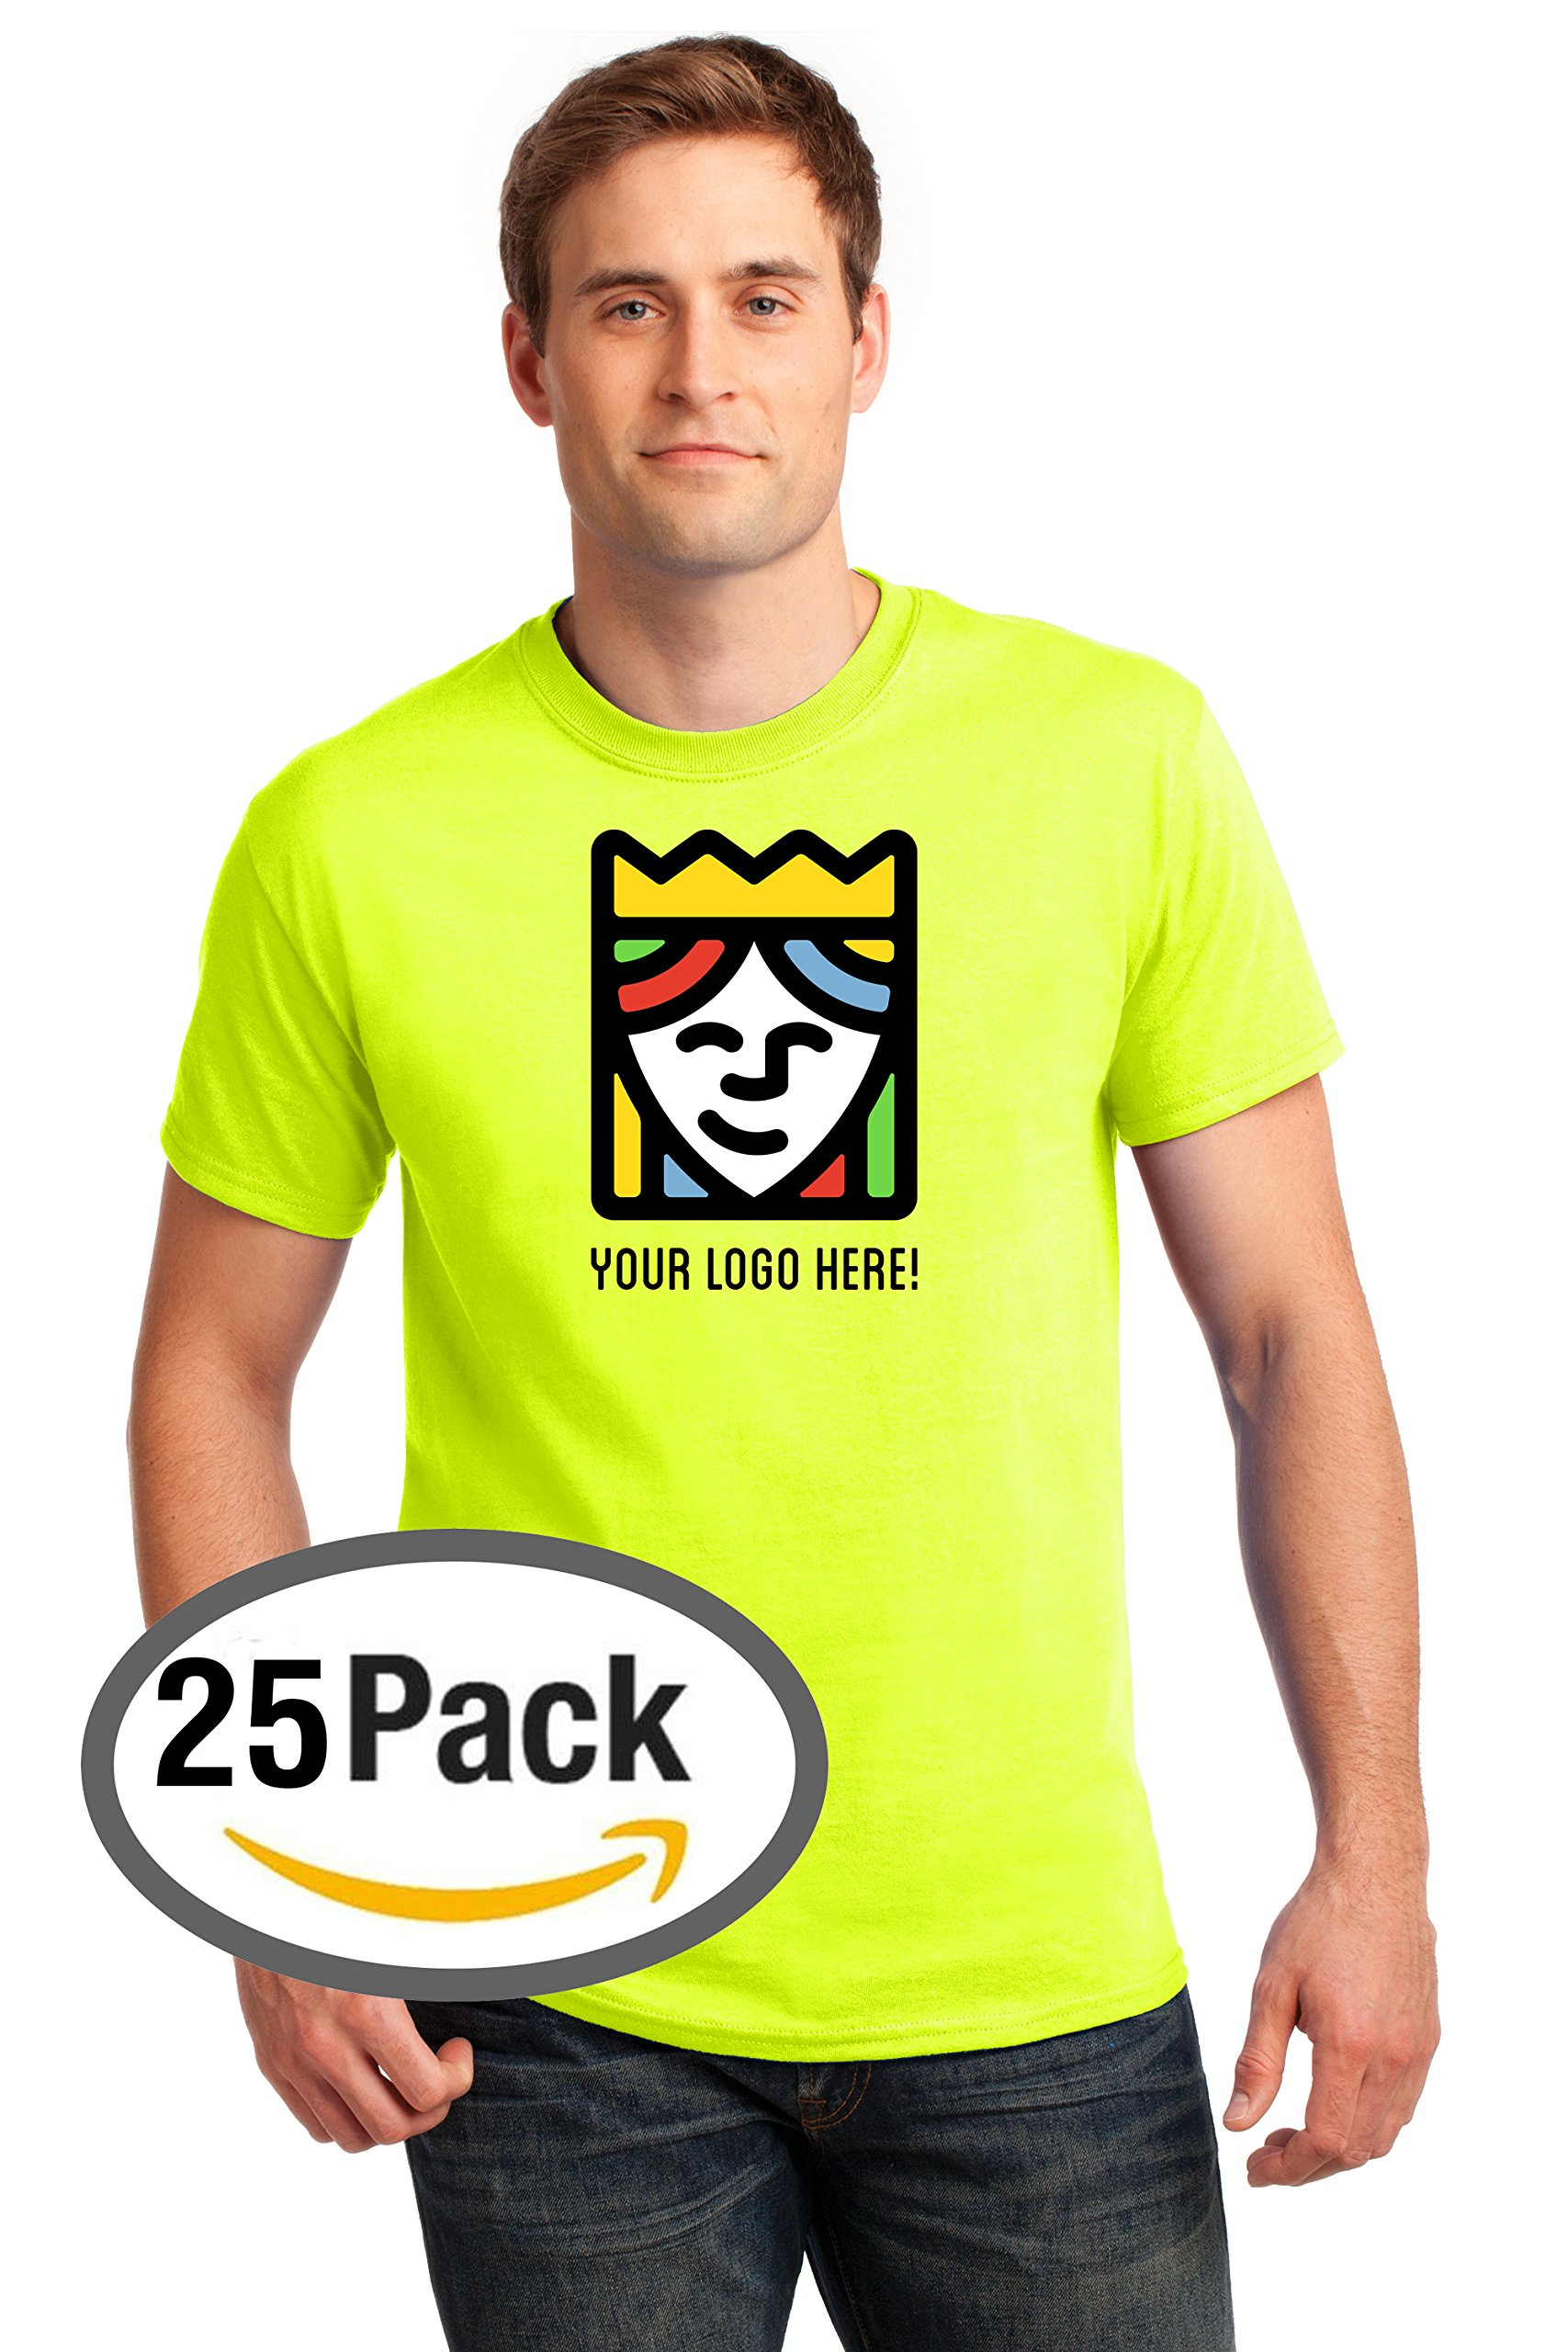 Queensboro Shirt Company Custom Printed Gildan Safety Tee – Multi-Colored Logo – Pack Of 25 by Queensboro Shirt Company